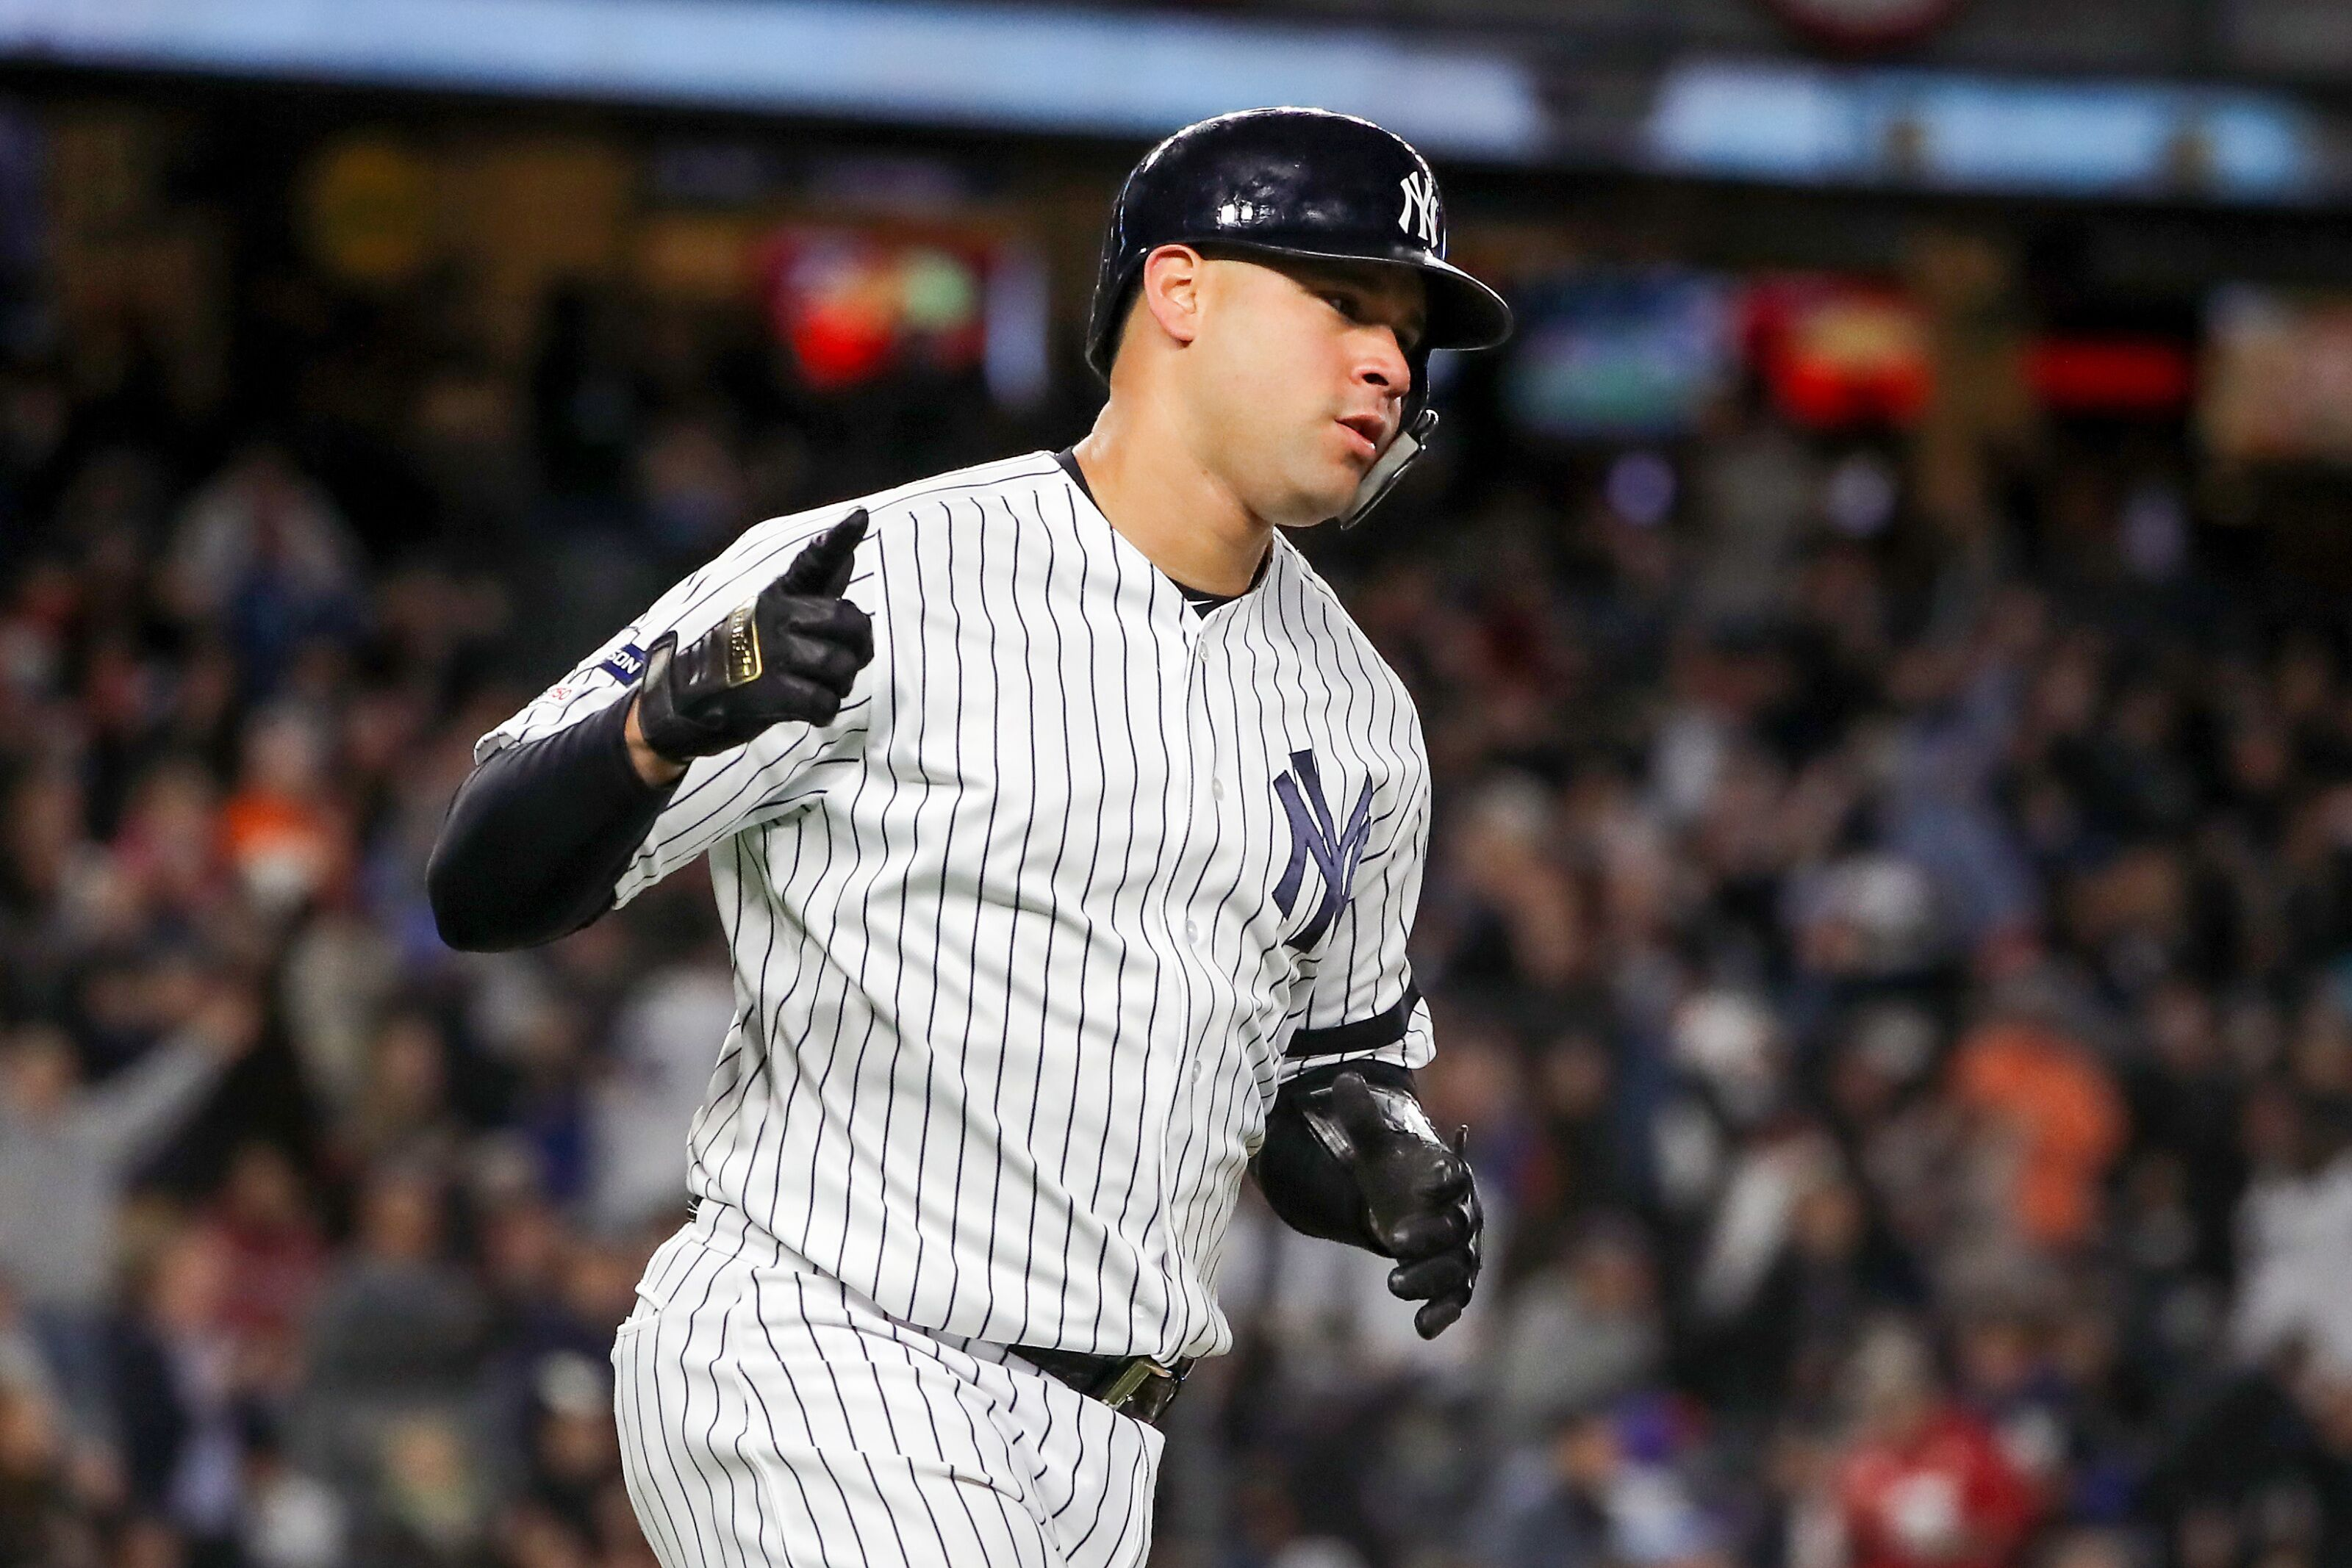 New York Yankees are valuing Gary Sanchez more this offseason